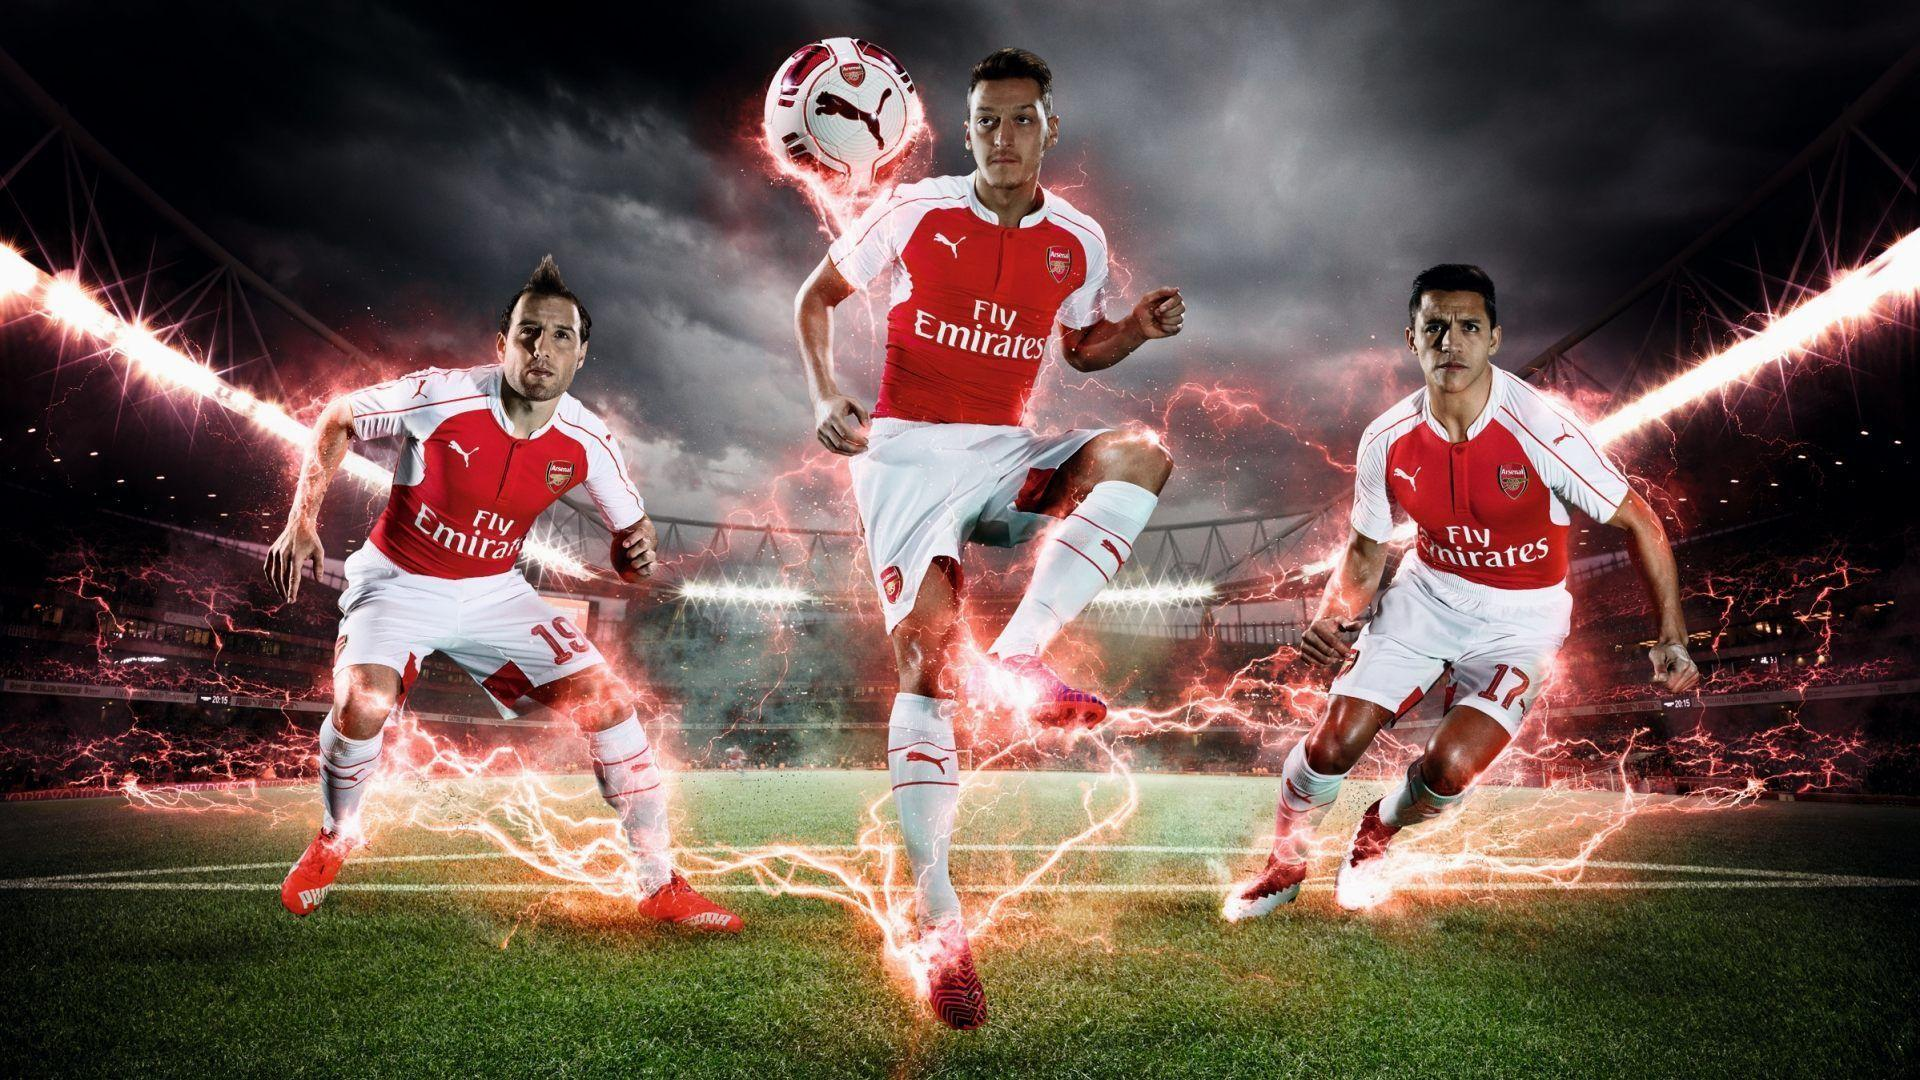 Arsenal logo wallpapers 2016 wallpaper cave for Home wallpaper 2016